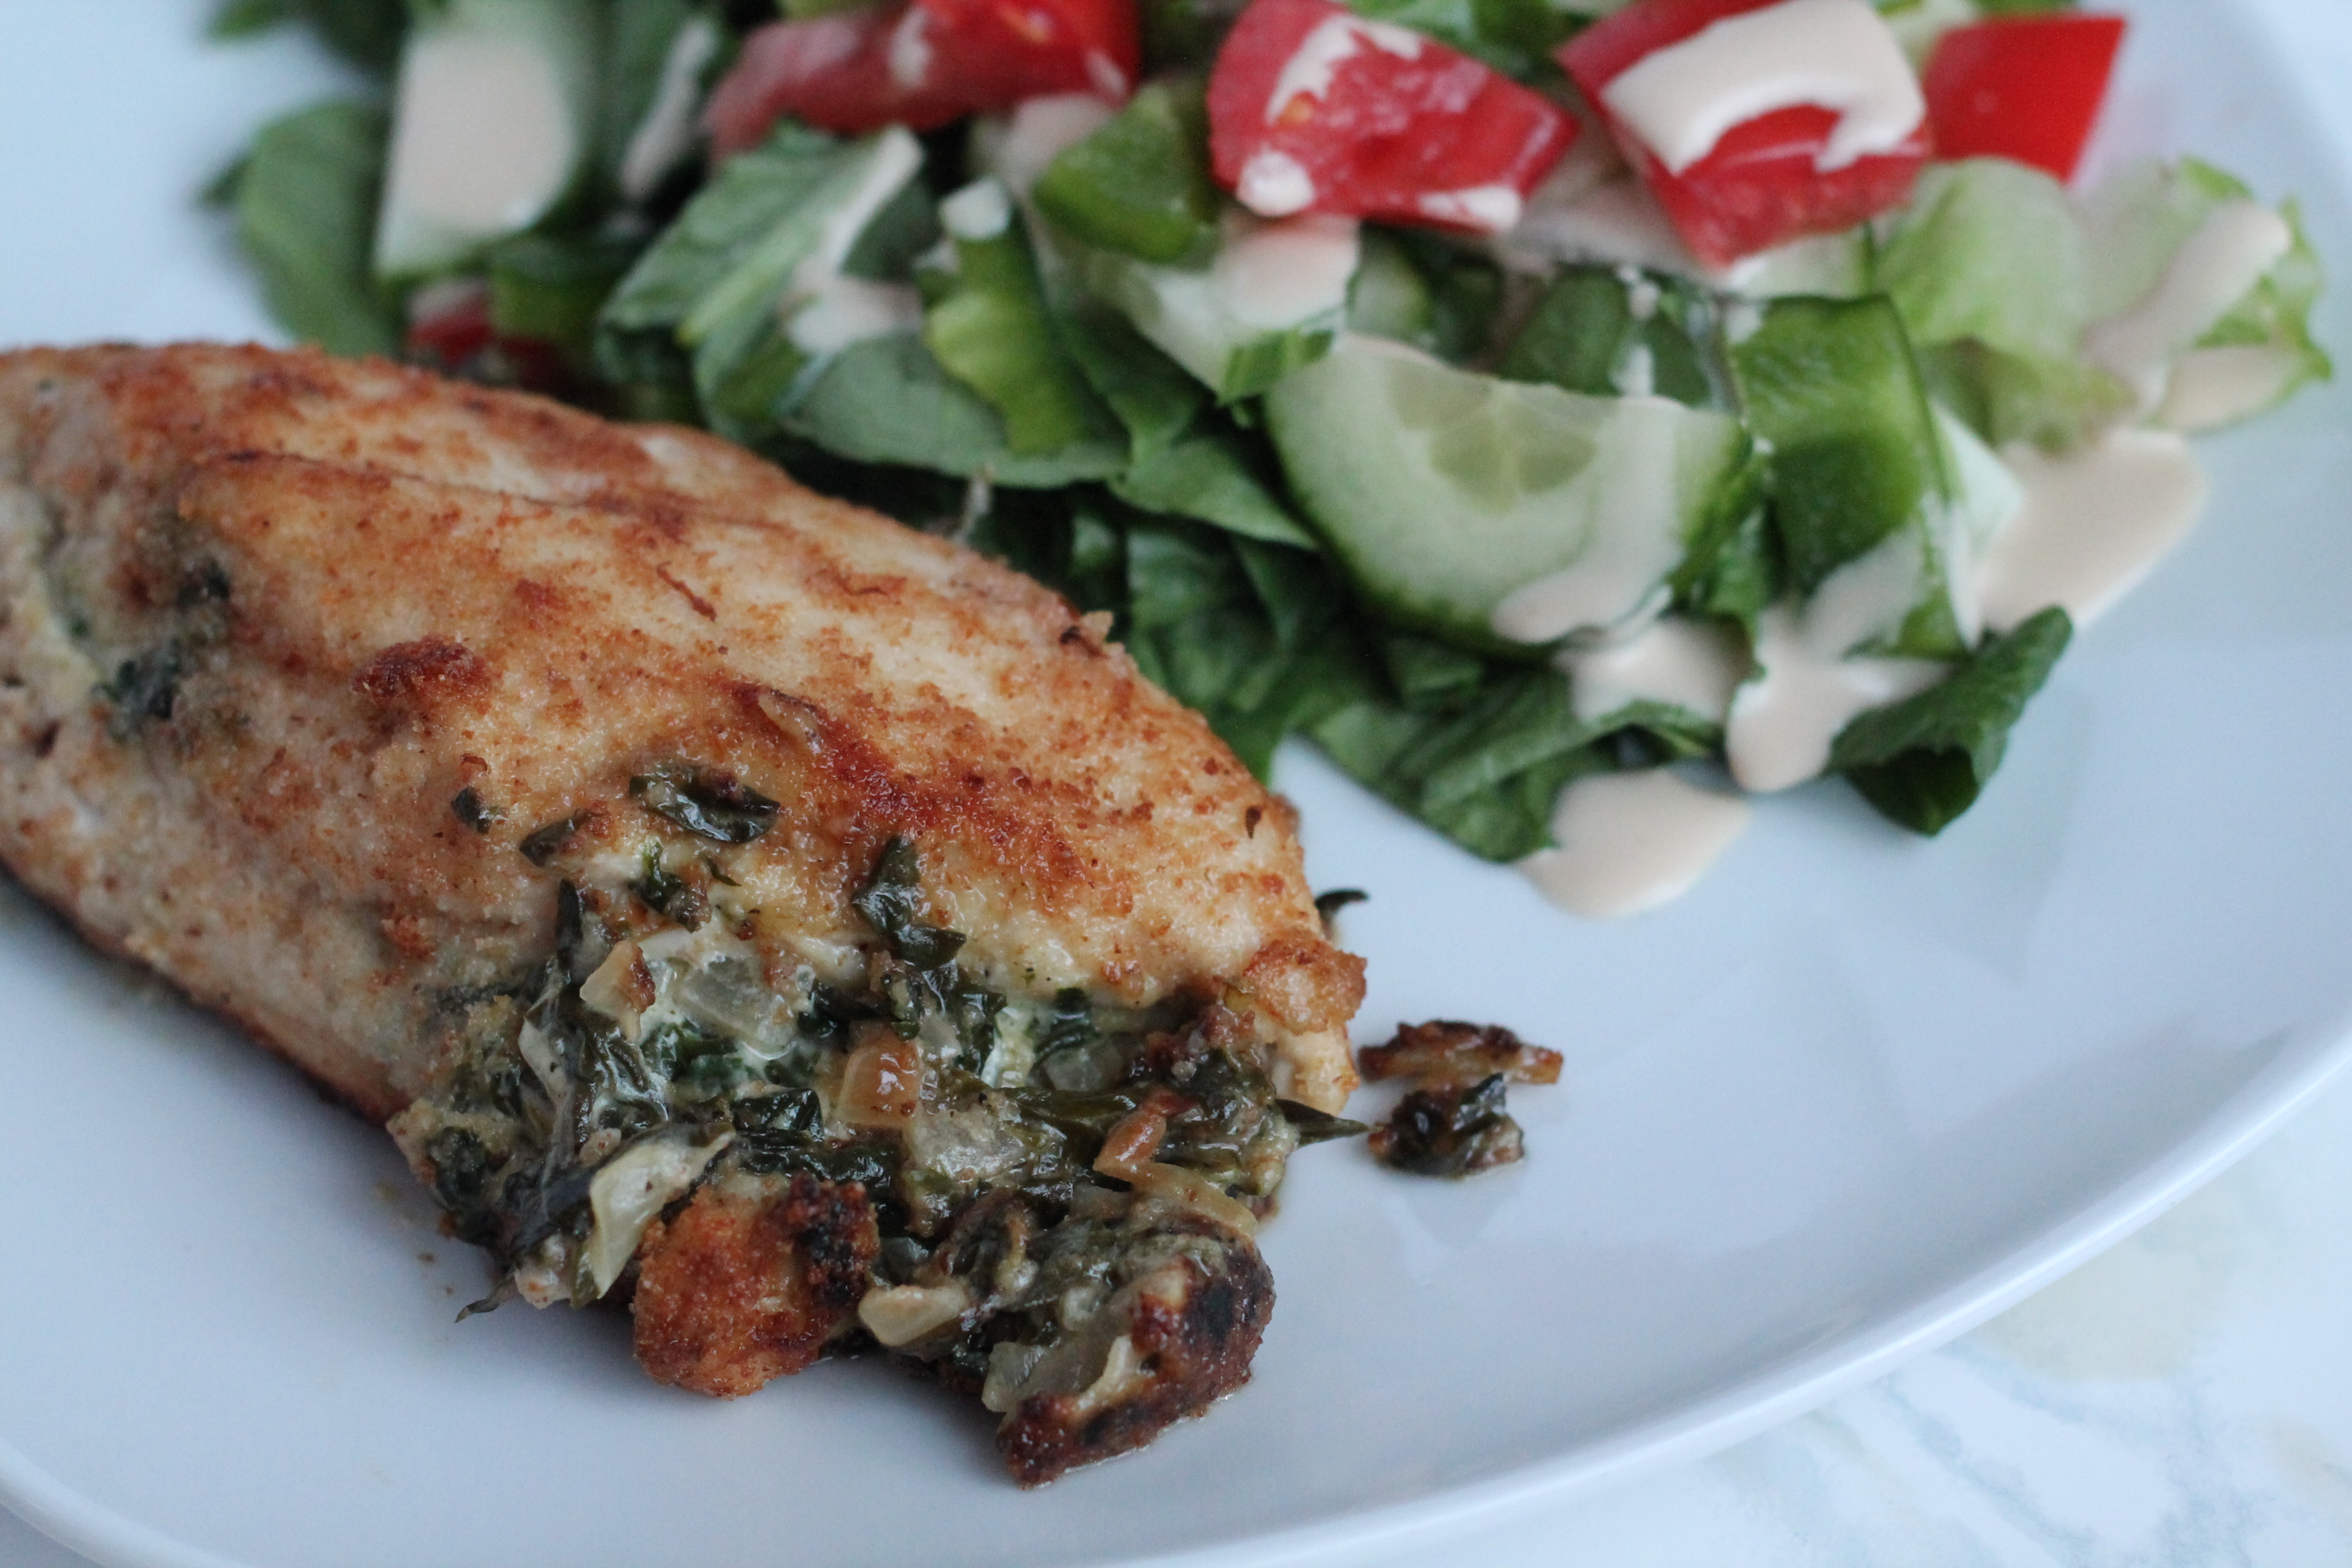 ... Caramelized onions, goat cheese and my favourite veggie – spinach